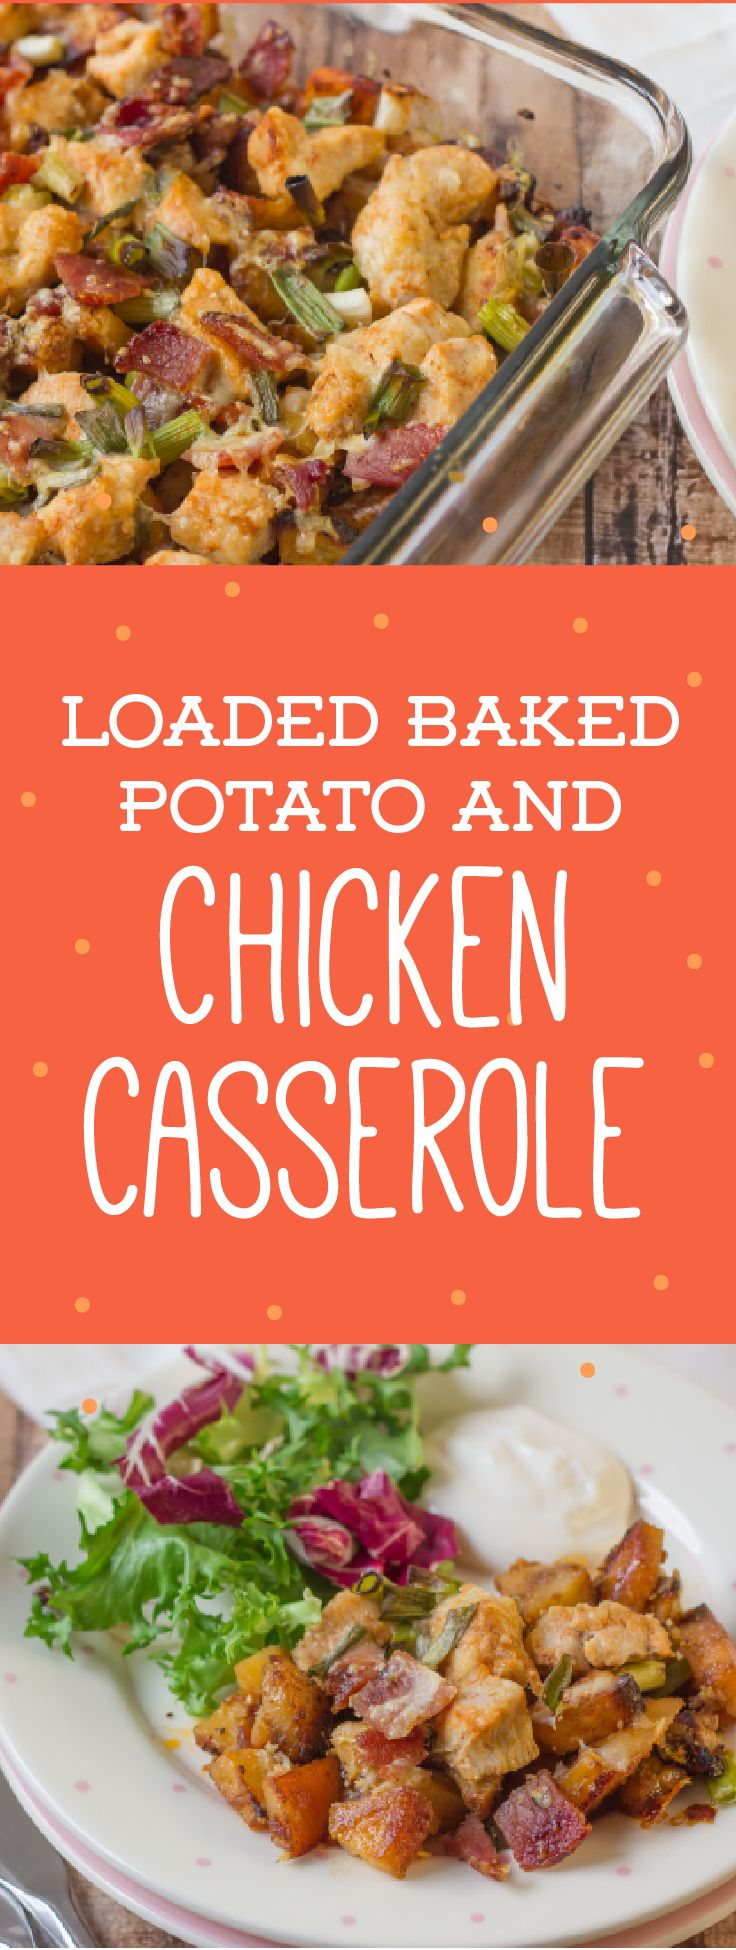 Prep this Loaded Baked Potato and Chicken Casserole in just 30 minutes ...